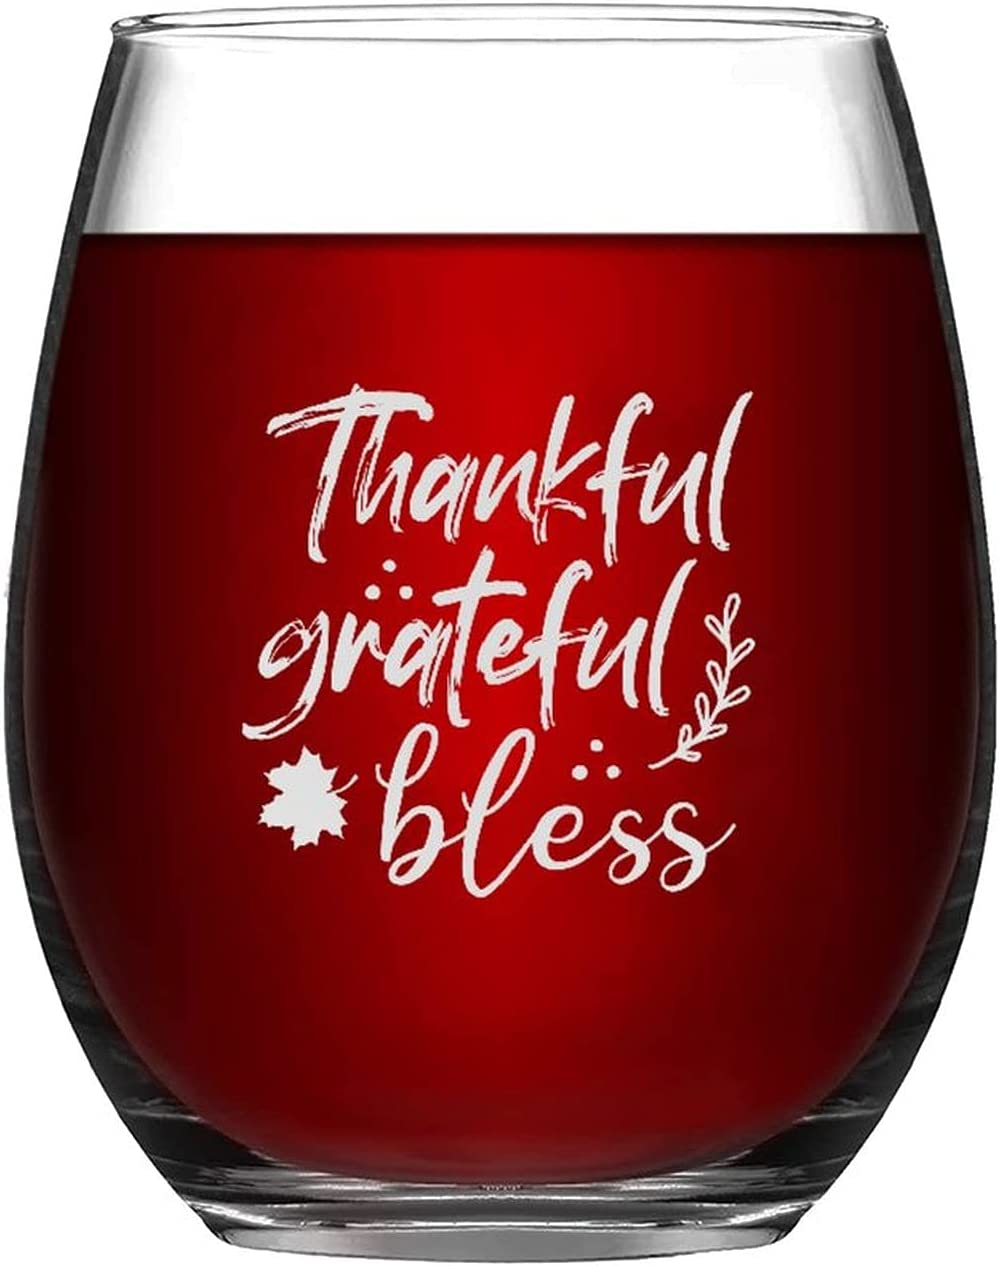 Max 90% OFF Stemless Wine Glasses Thankful Grateful Engraved Max 65% OFF Laser Bless Gla